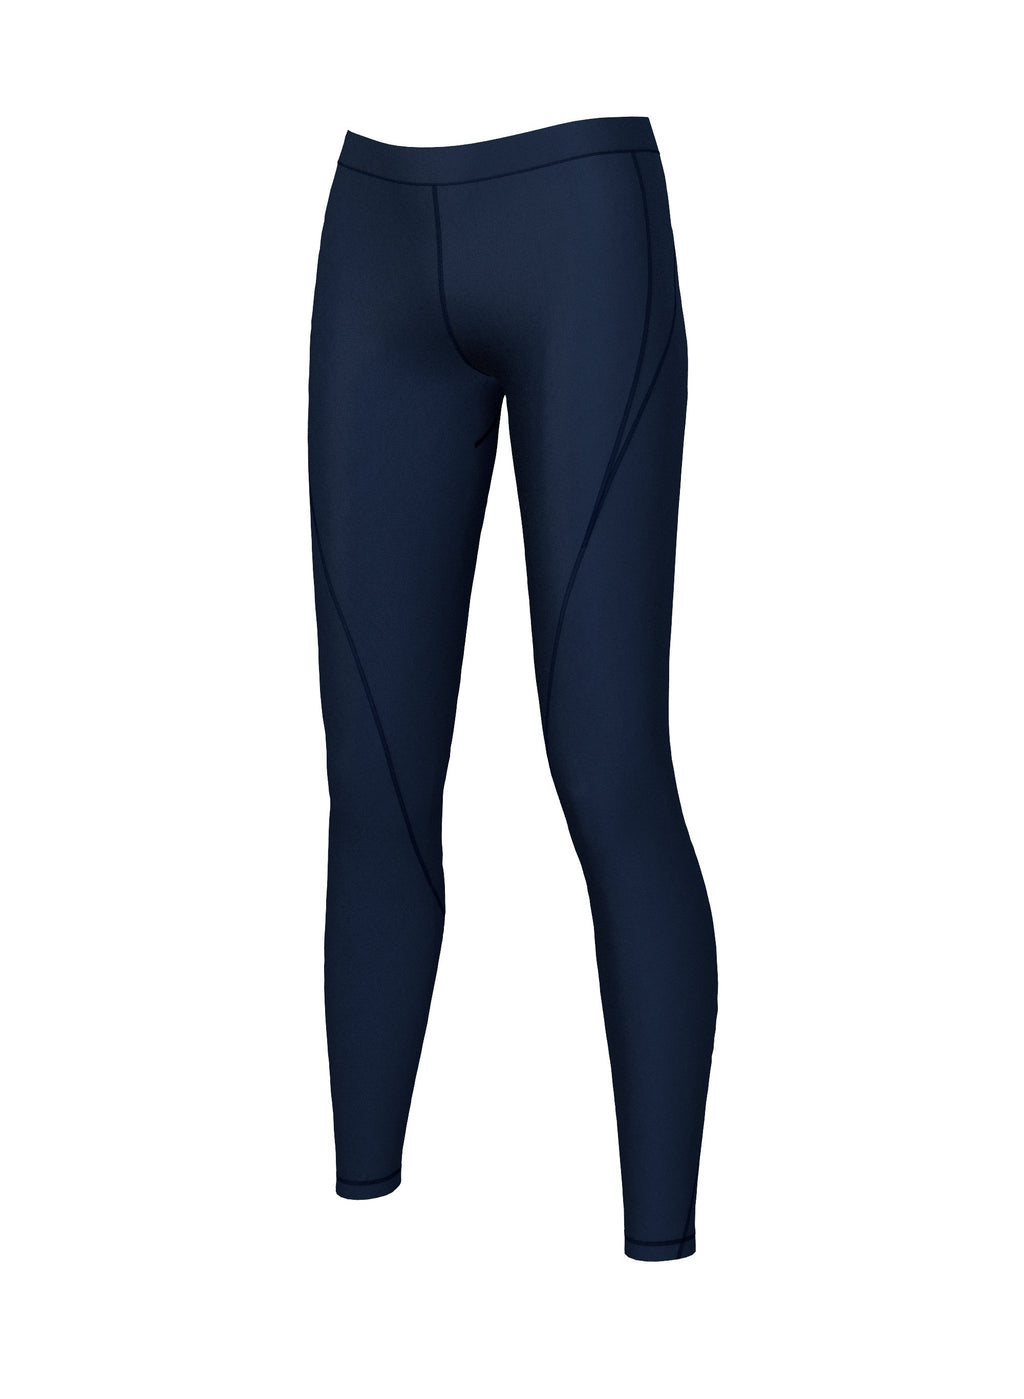 BHHC Womens power stretch tights